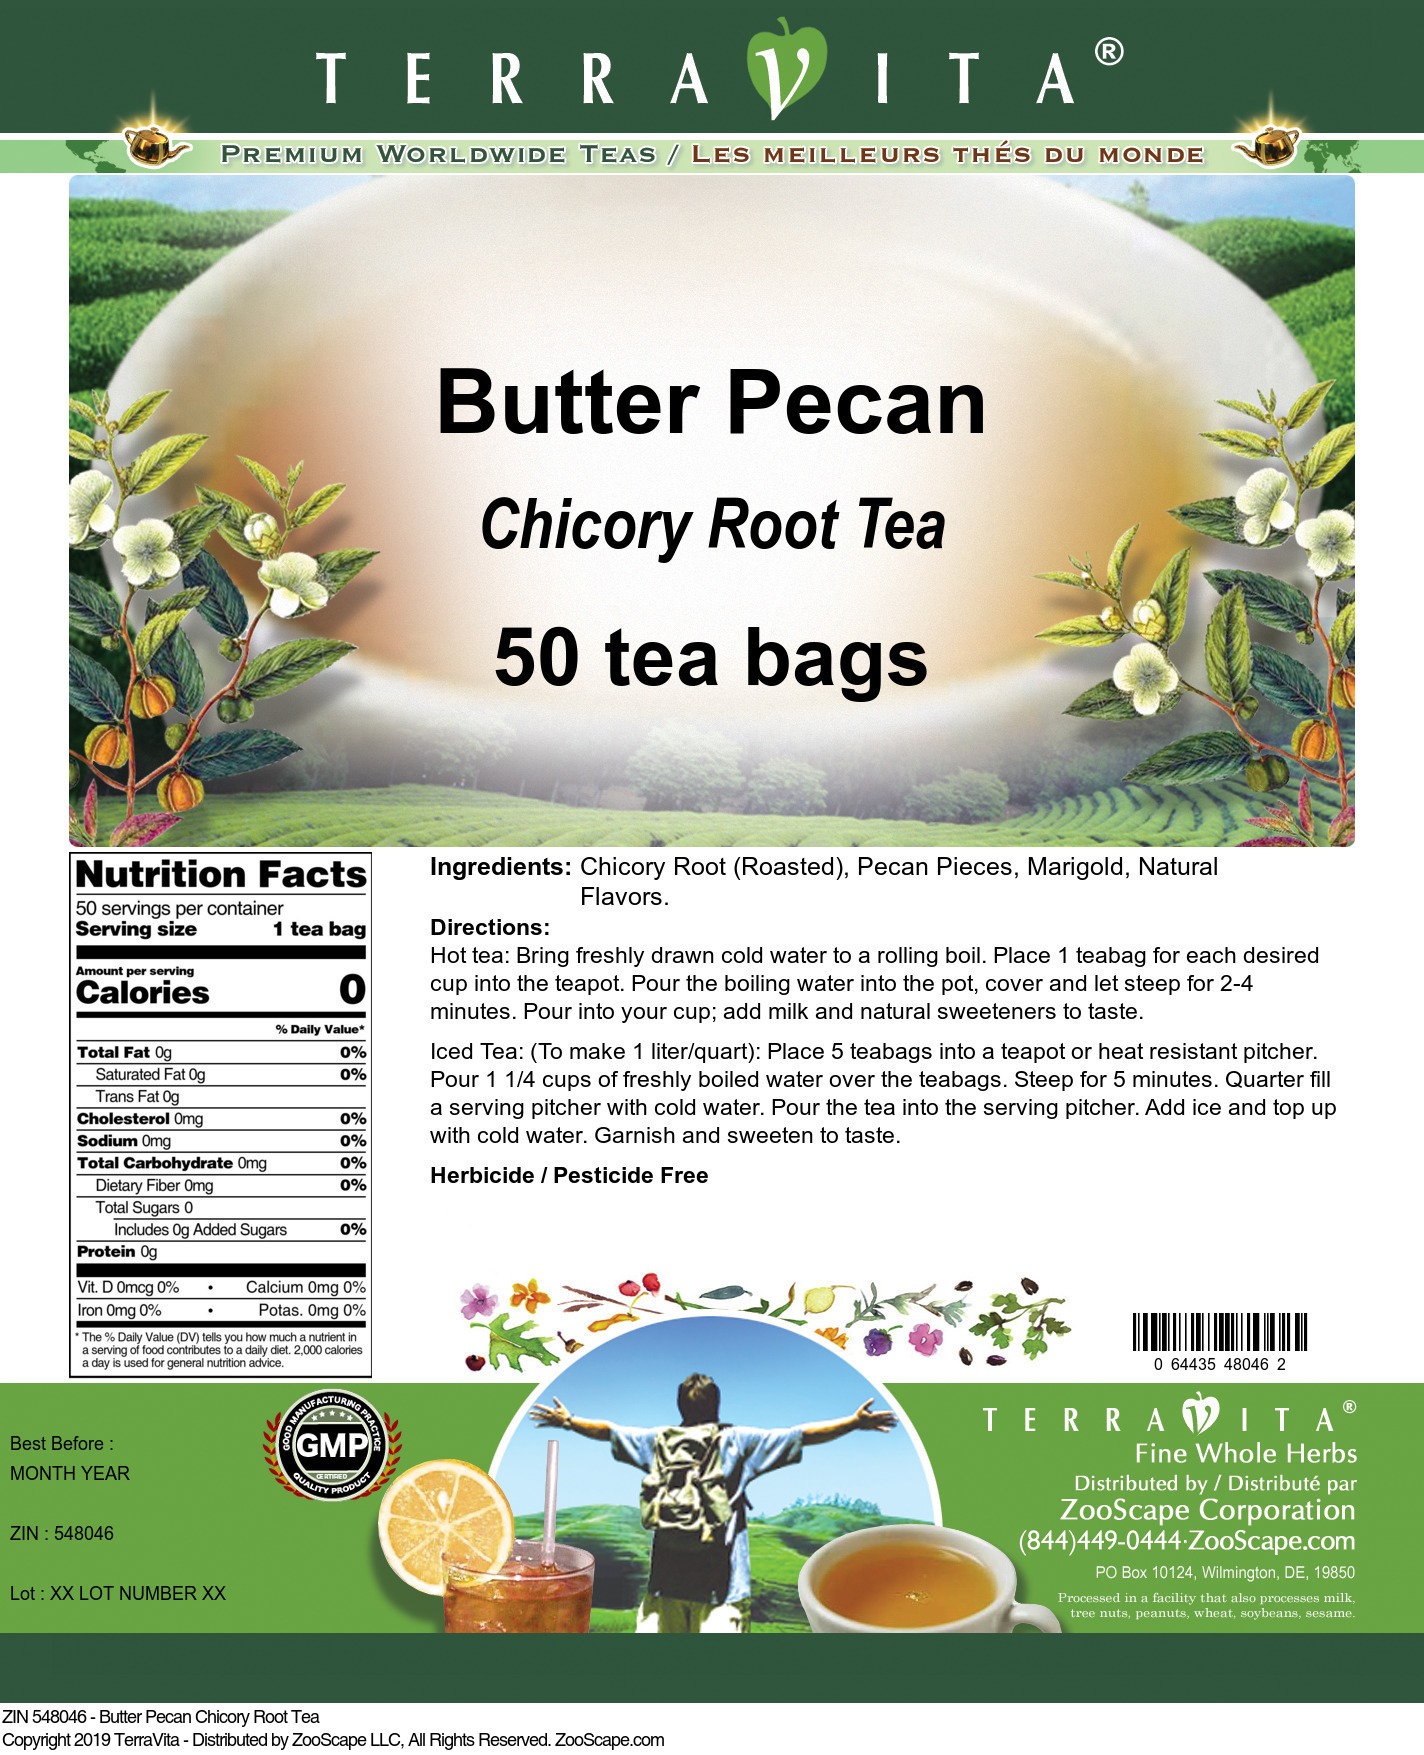 Butter Pecan Chicory Root